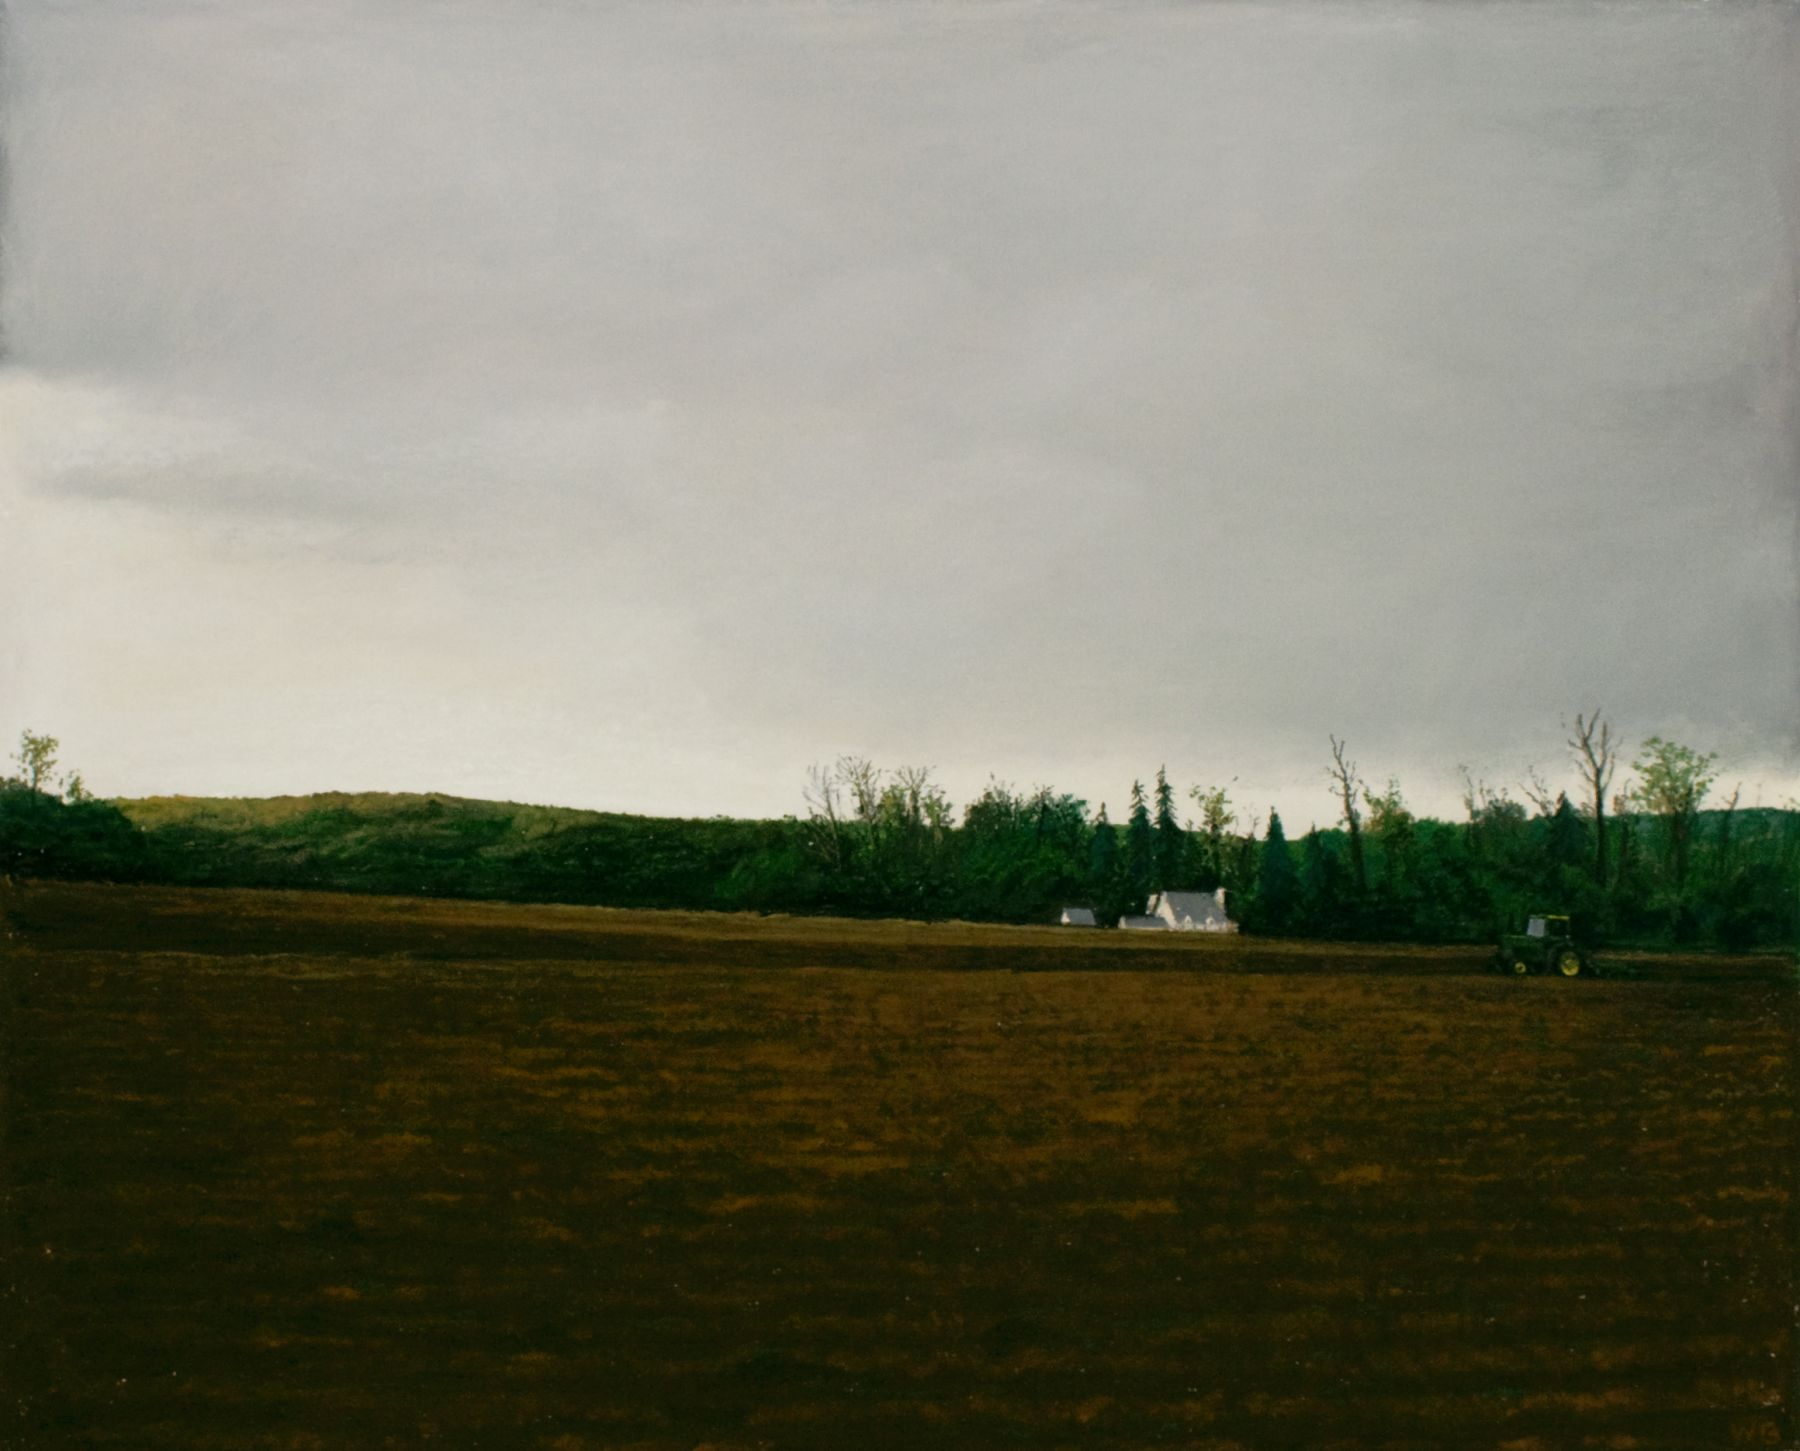 william beckman, John Deere 2, 2014, pastel on paper, image: 19 3/4 x 23 3/4 inches, paper: 23 3/4 x 27 3/4 inches